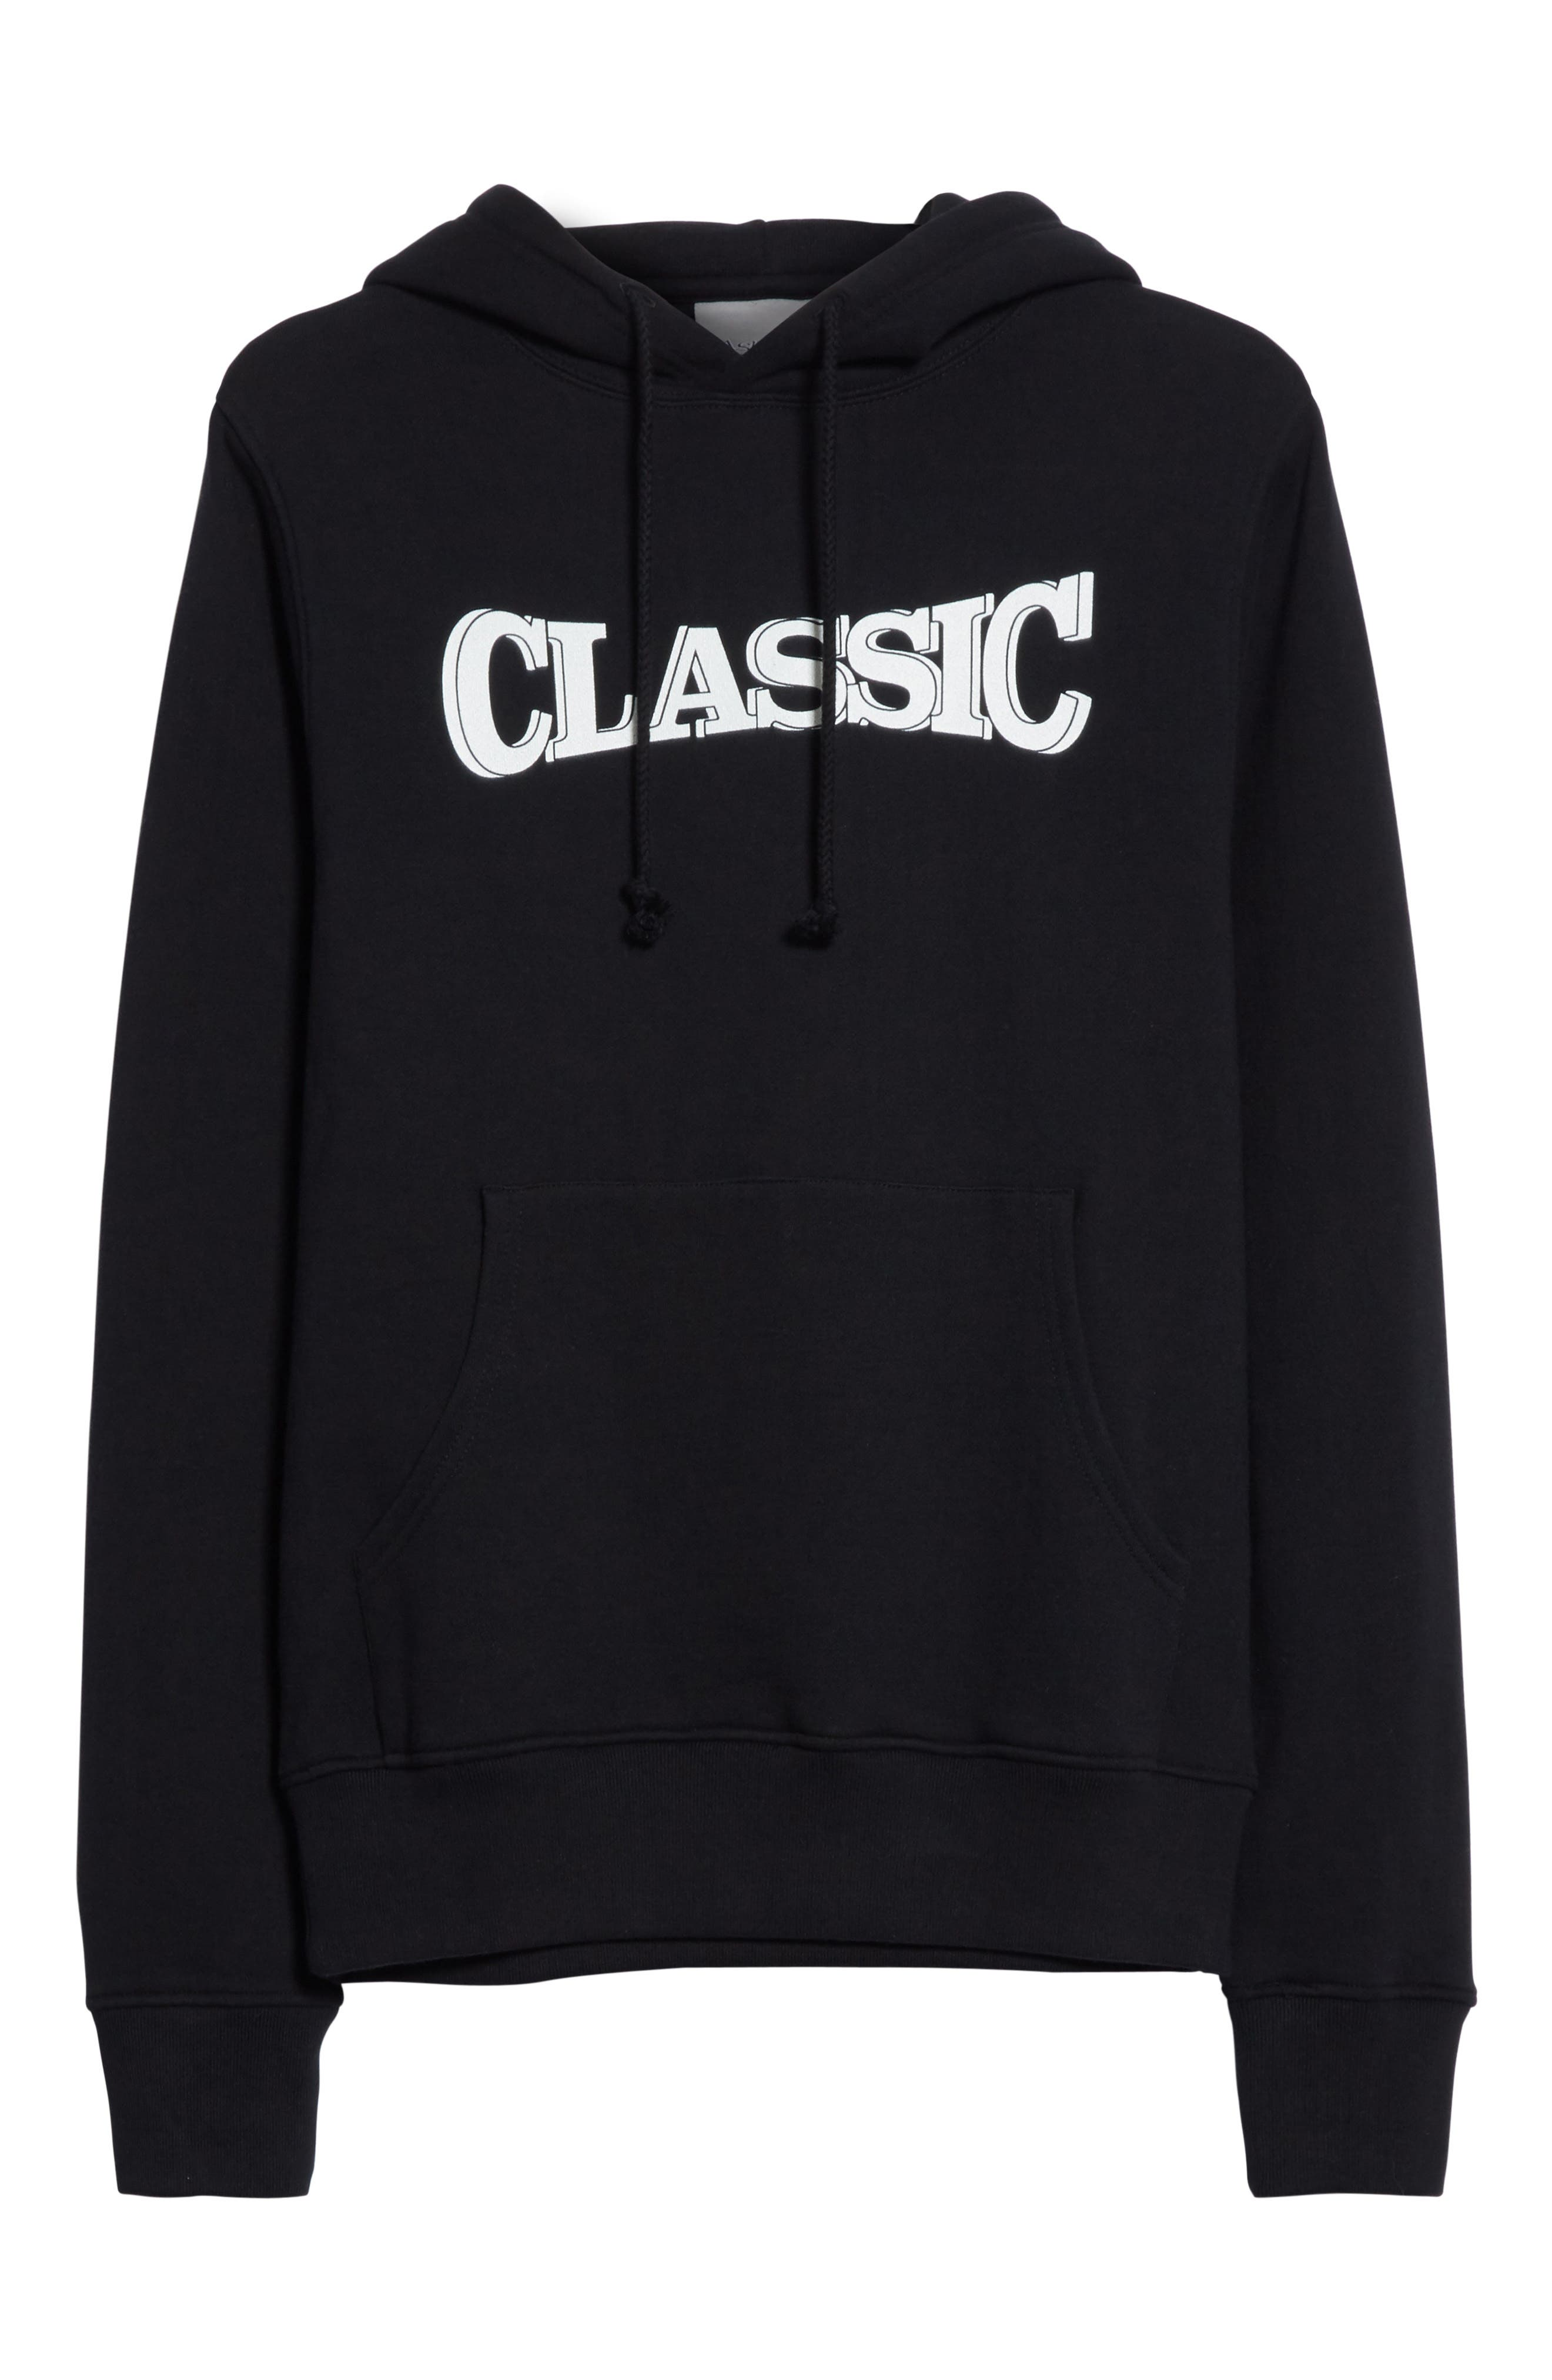 Classic Pullover Hoodie,                             Alternate thumbnail 6, color,                             Black